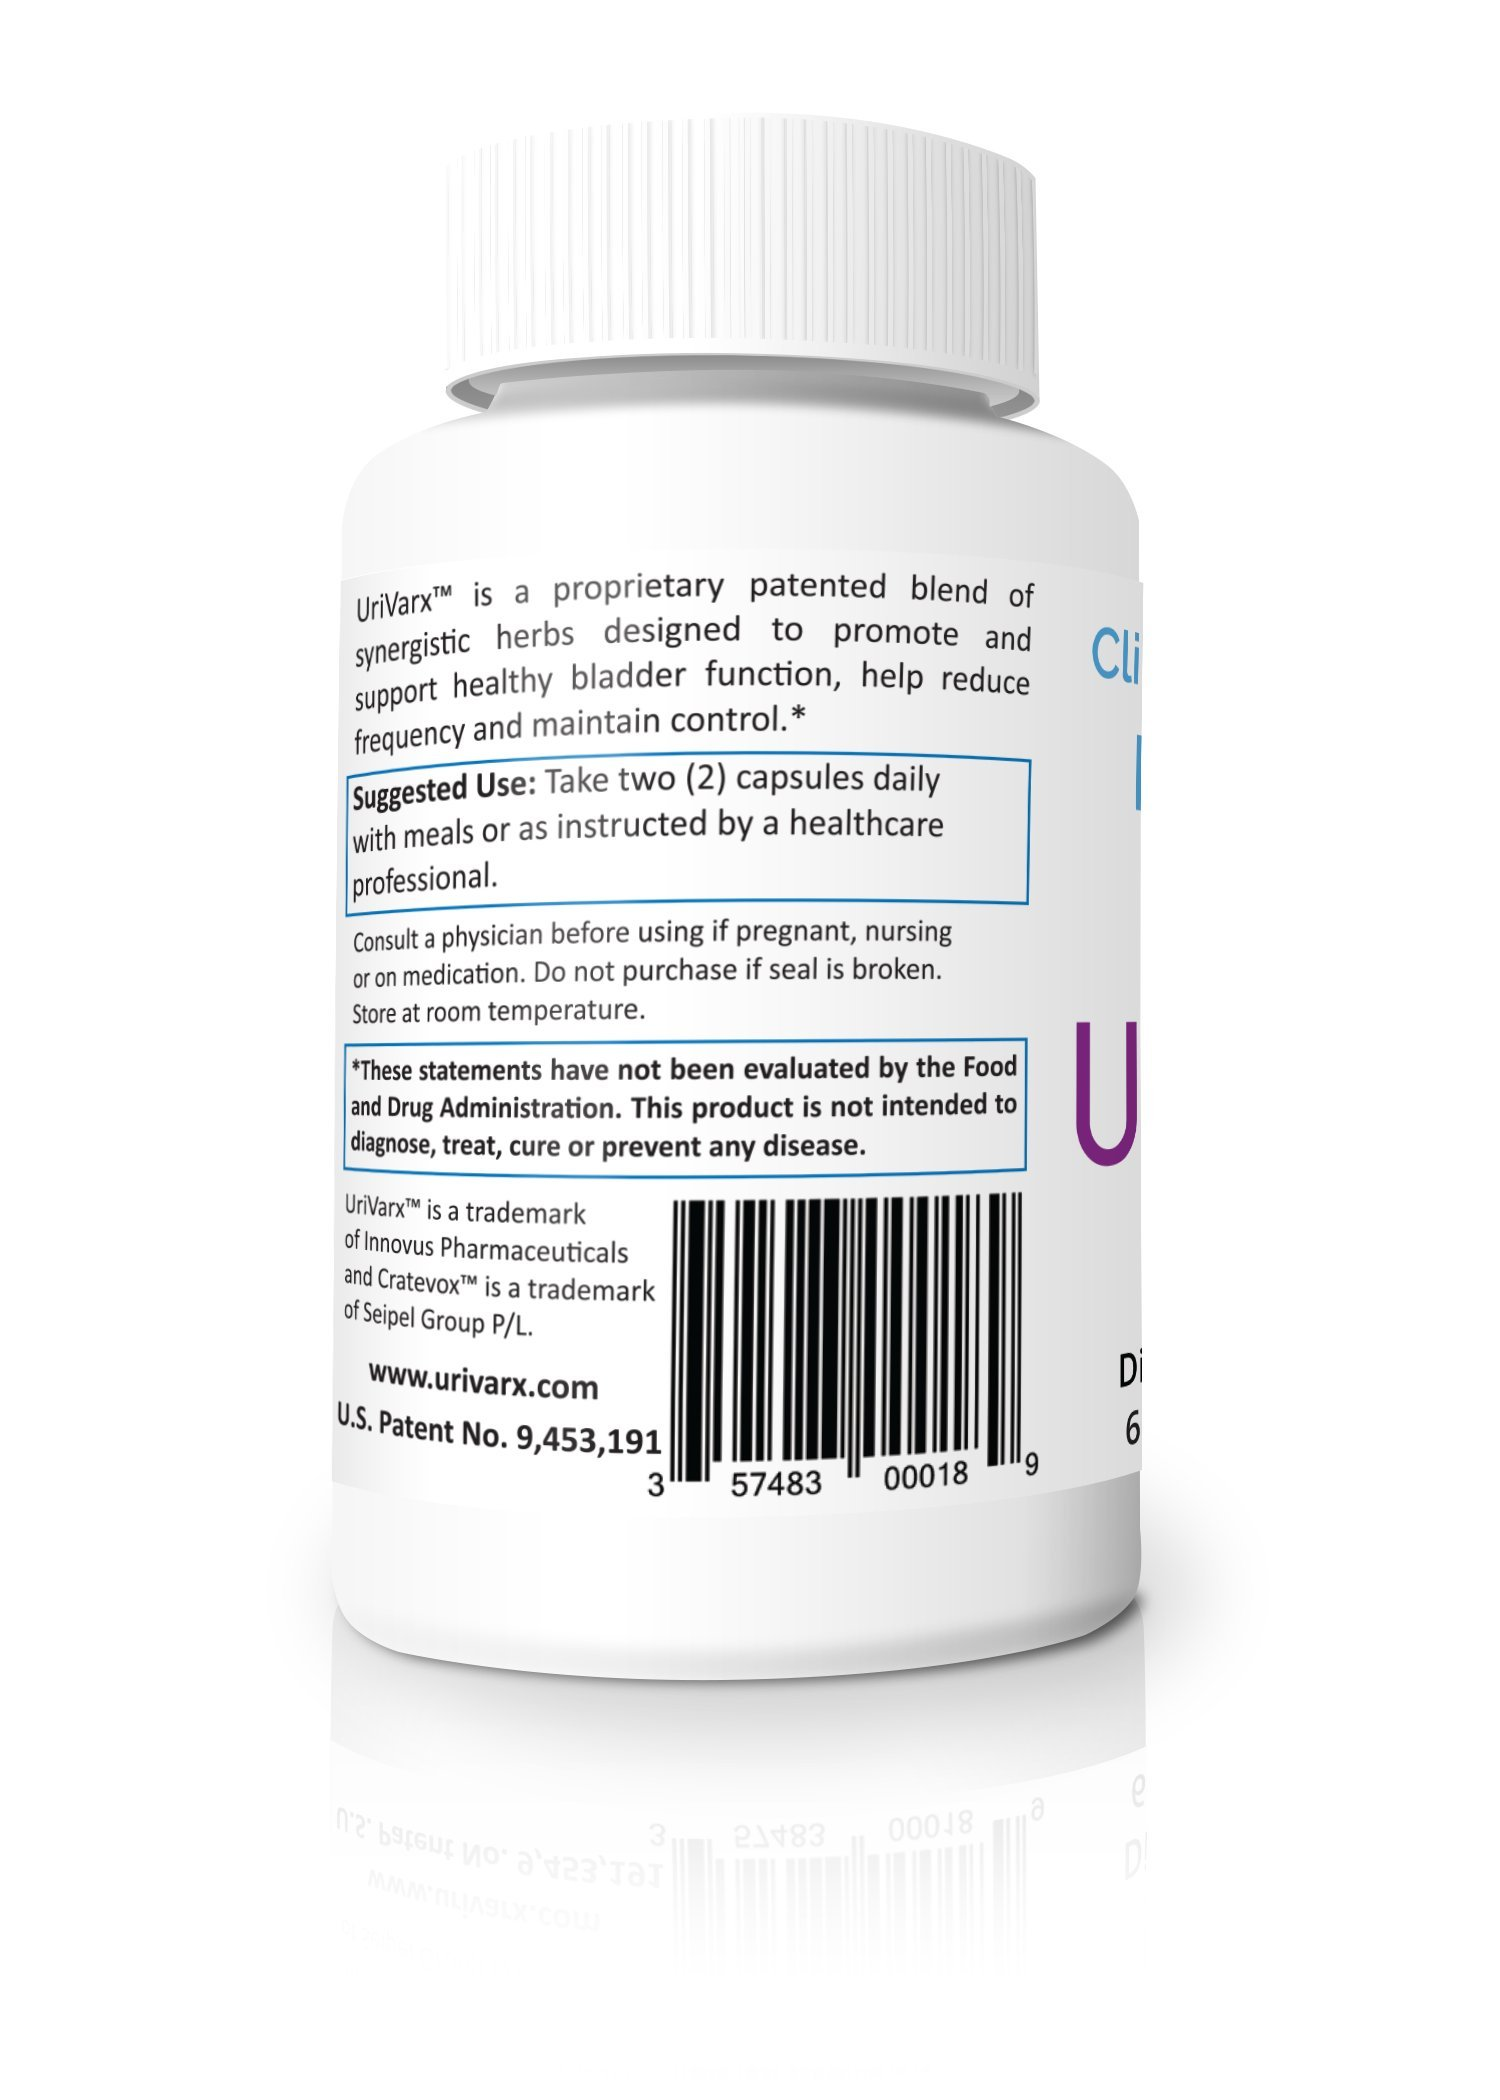 UriVarx - Clinically Proven Bladder Control to Promote and Support Healthy Bladder Function, Help Reduce Frequency and Maintain Bladder Control - 60 Veggie Capsules by UriVarx (Image #3)